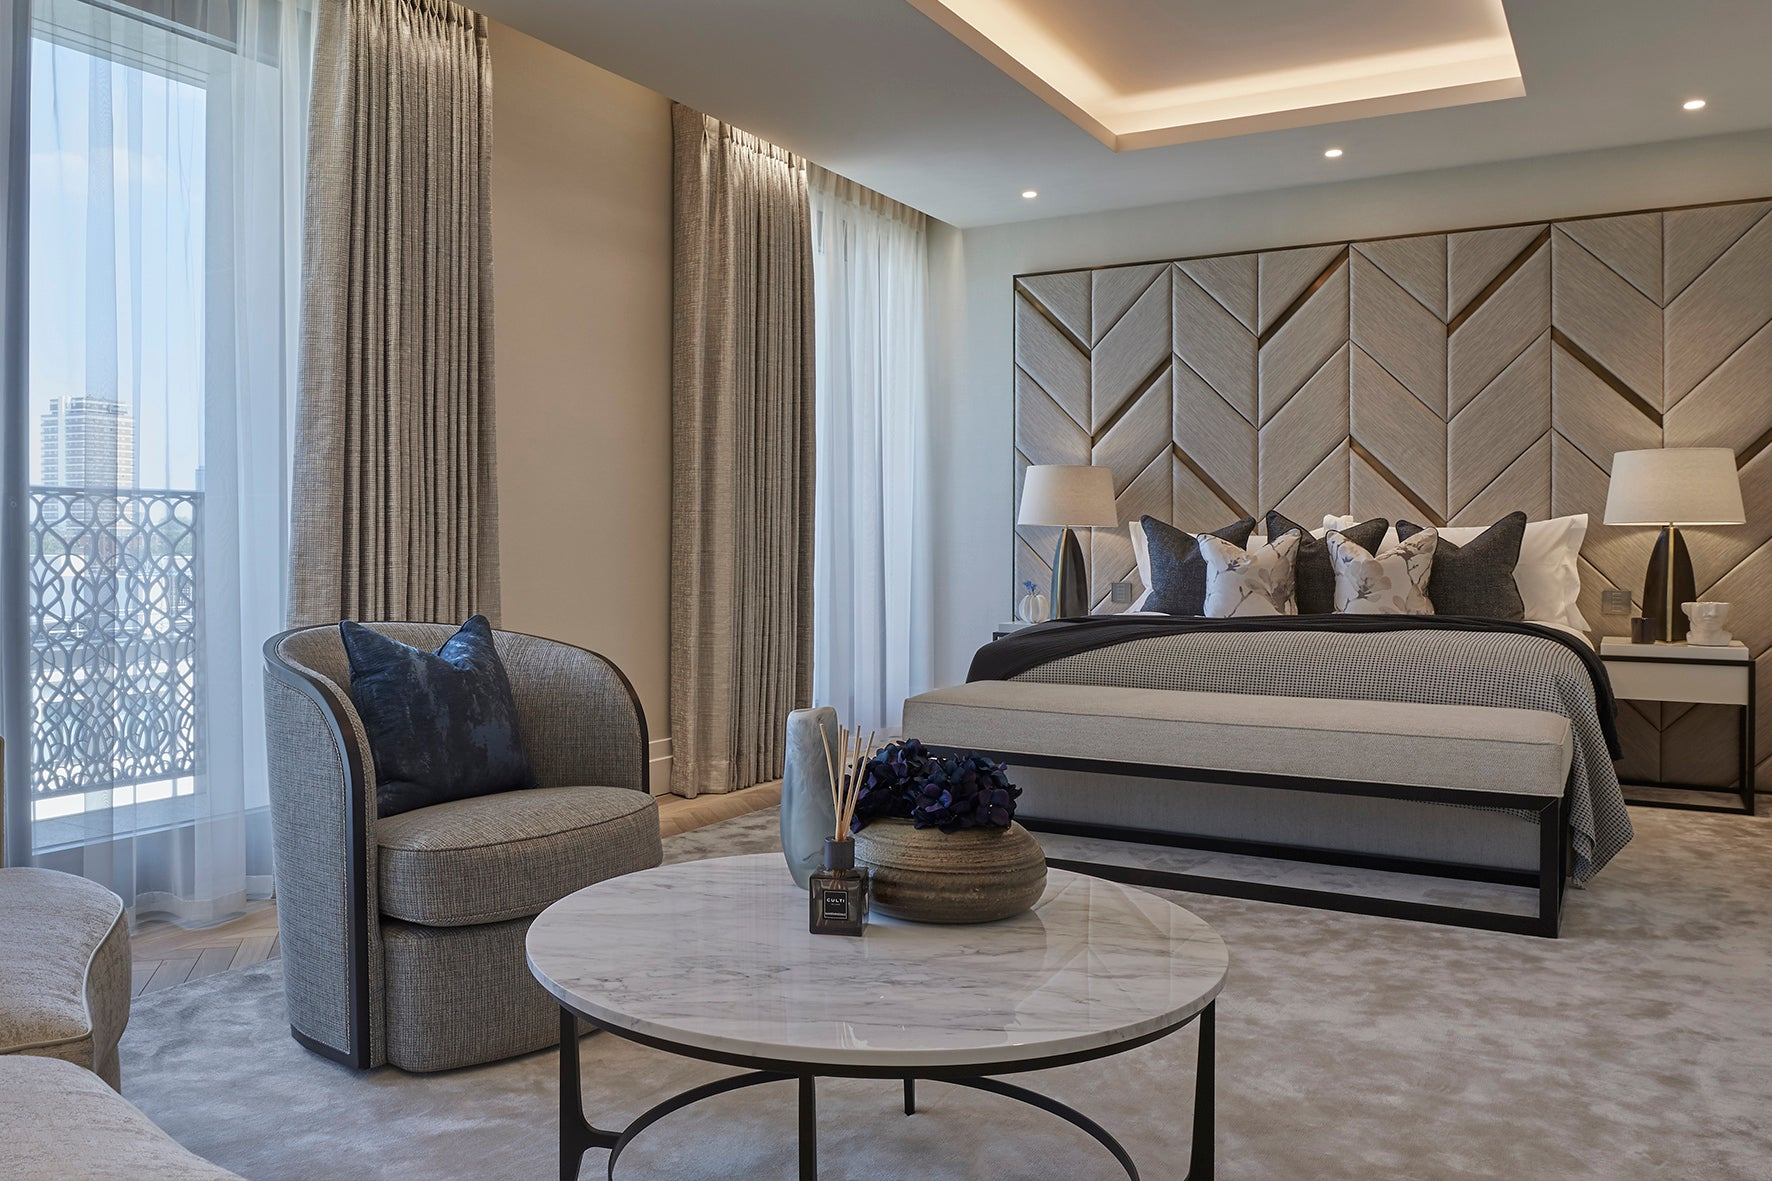 Master bedroom - Elicyon design the interiors for the Chelsea Barracks show residence in London